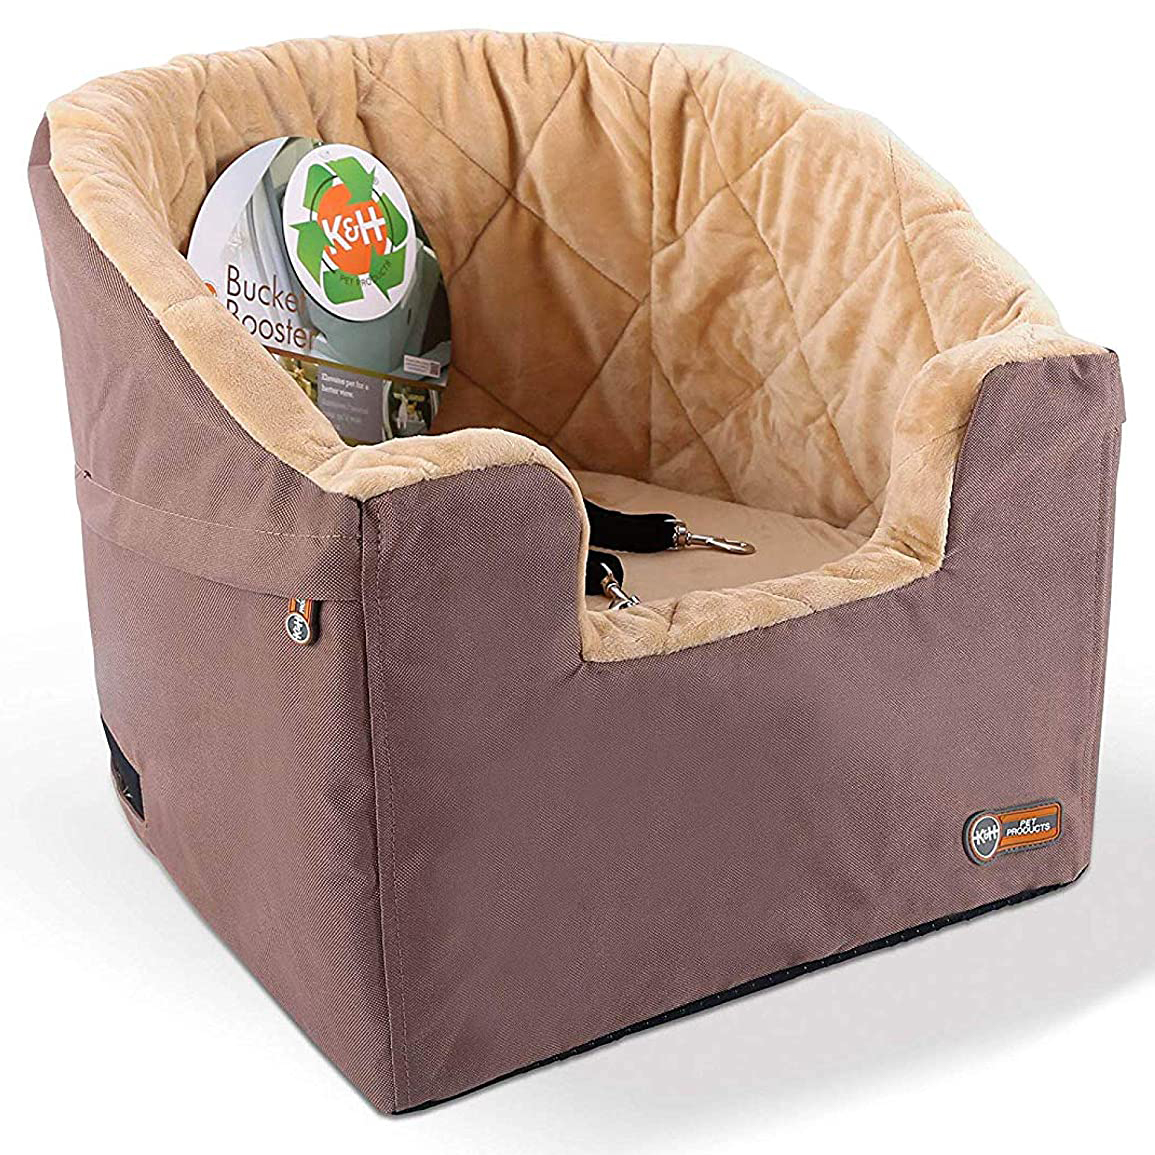 Photo of a K&H Pet Products Small Bucket Booster seat on a white background